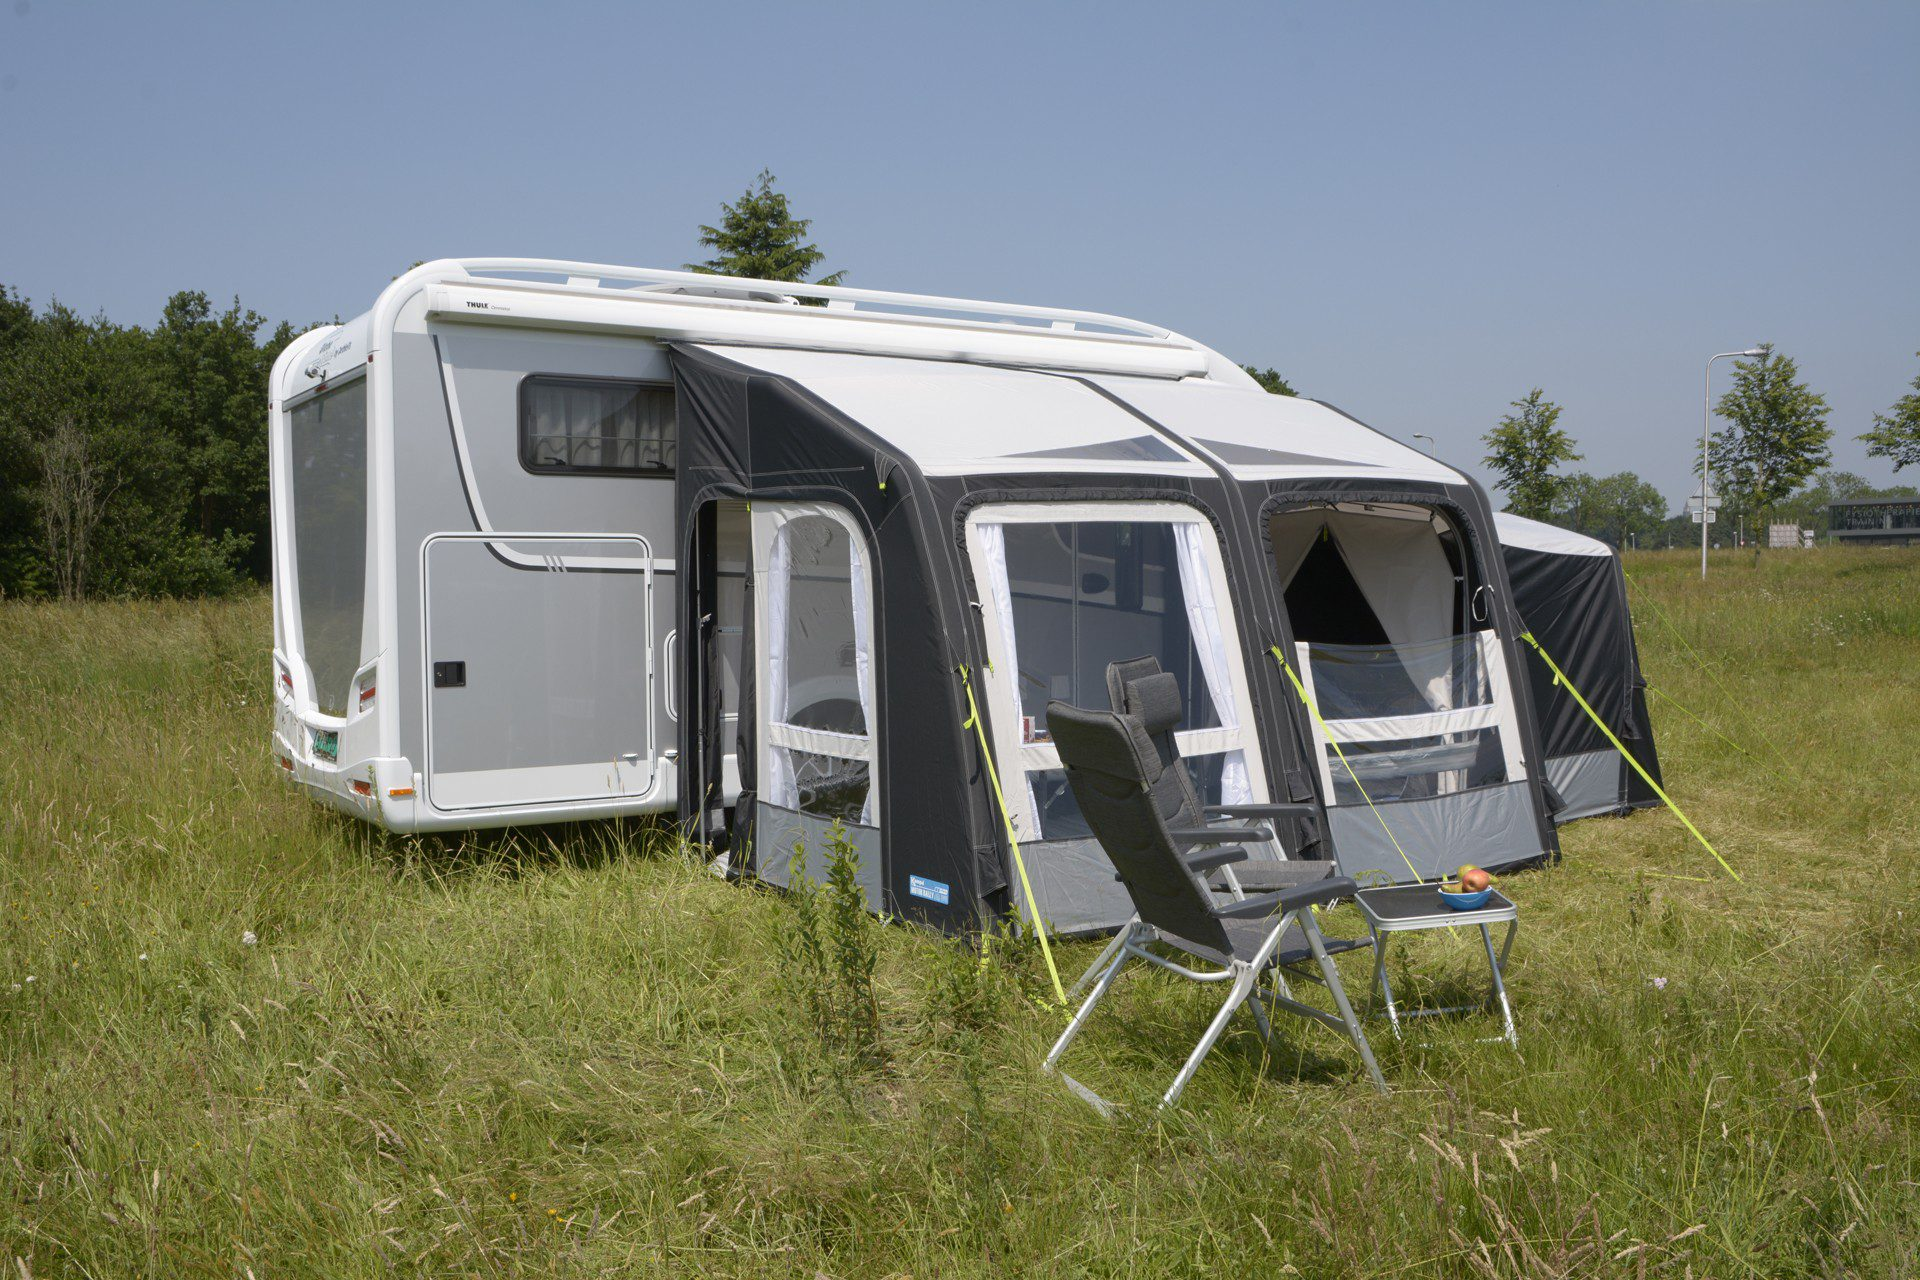 Kampa Motor Rally Air Pro 330 Motor Home Awning 2019 8